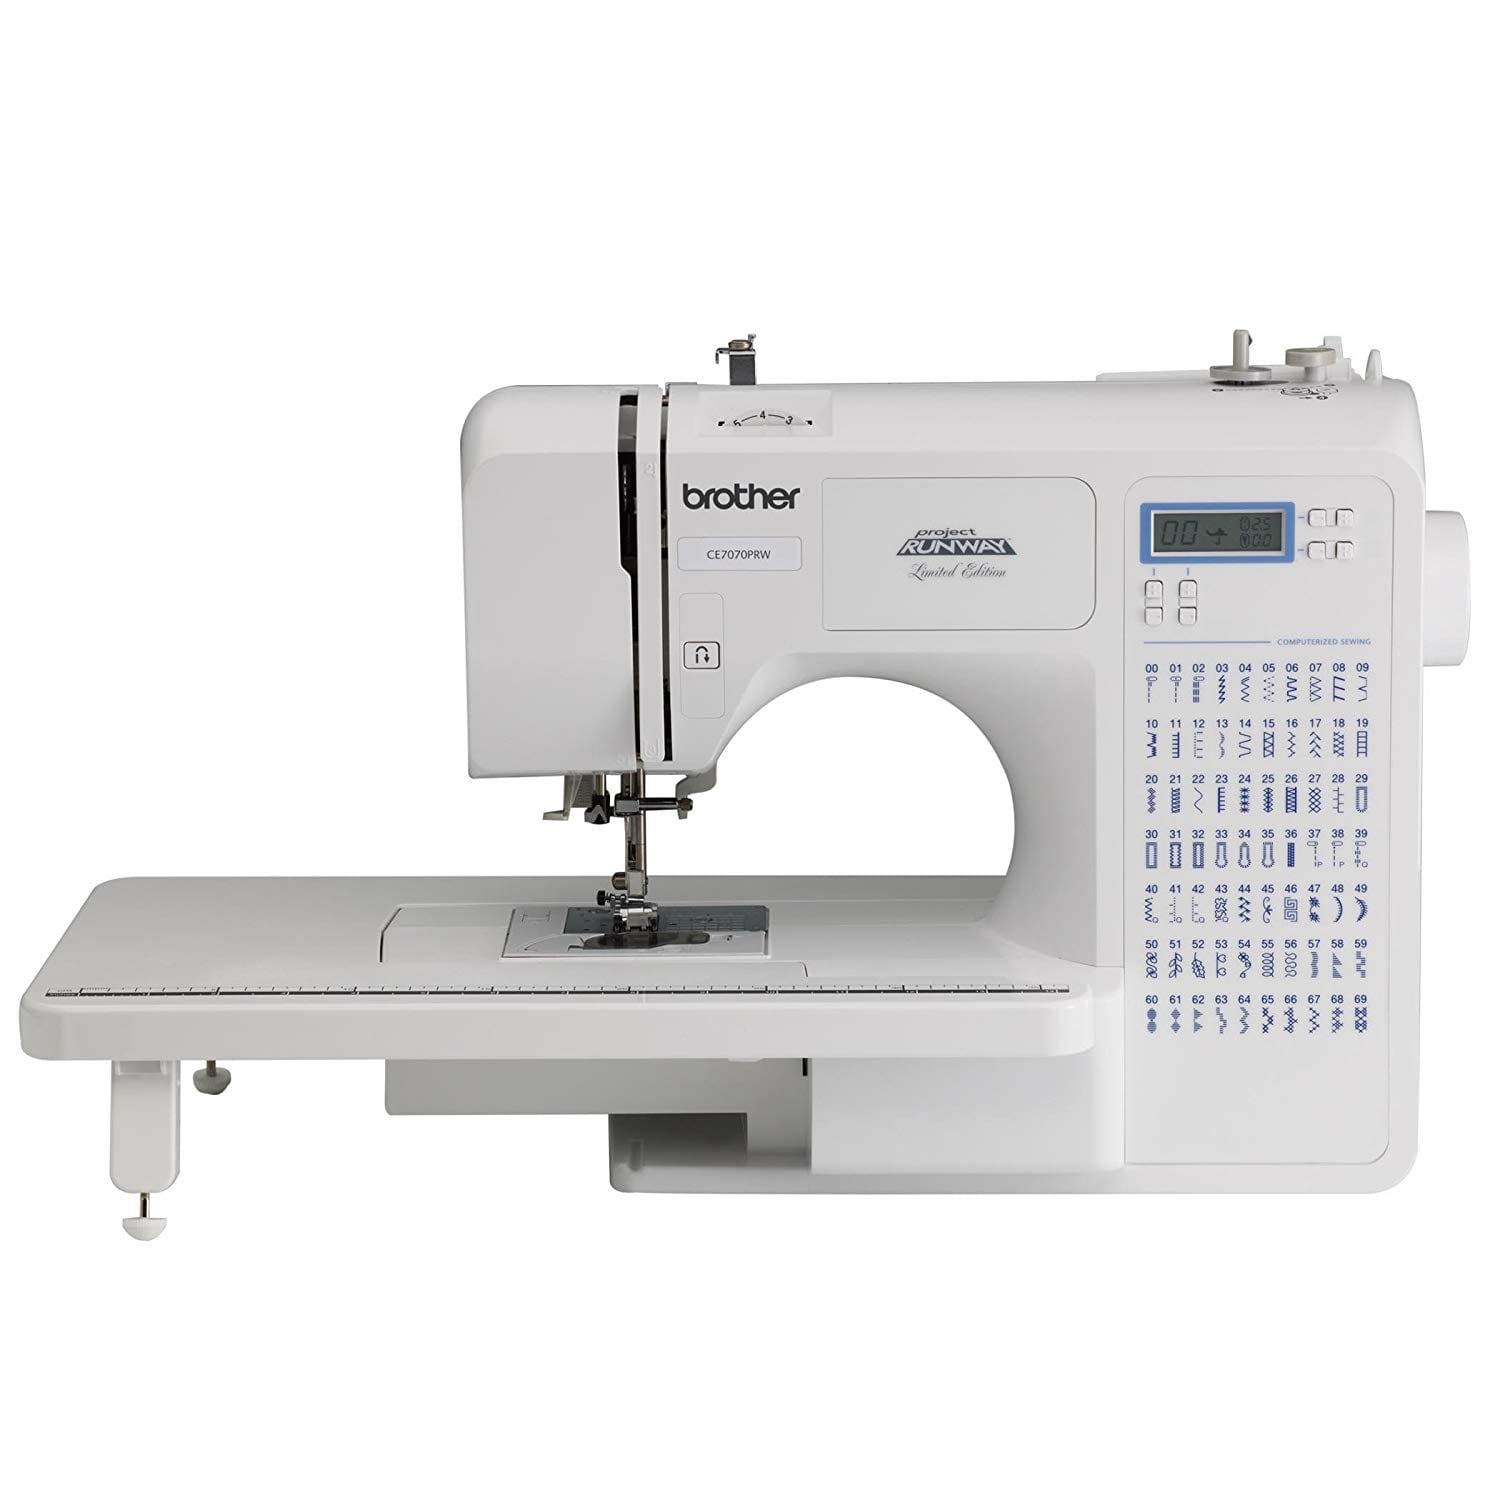 Brother Runway Project CE7070PRW Computerized 70-Stitch Sewing Machine